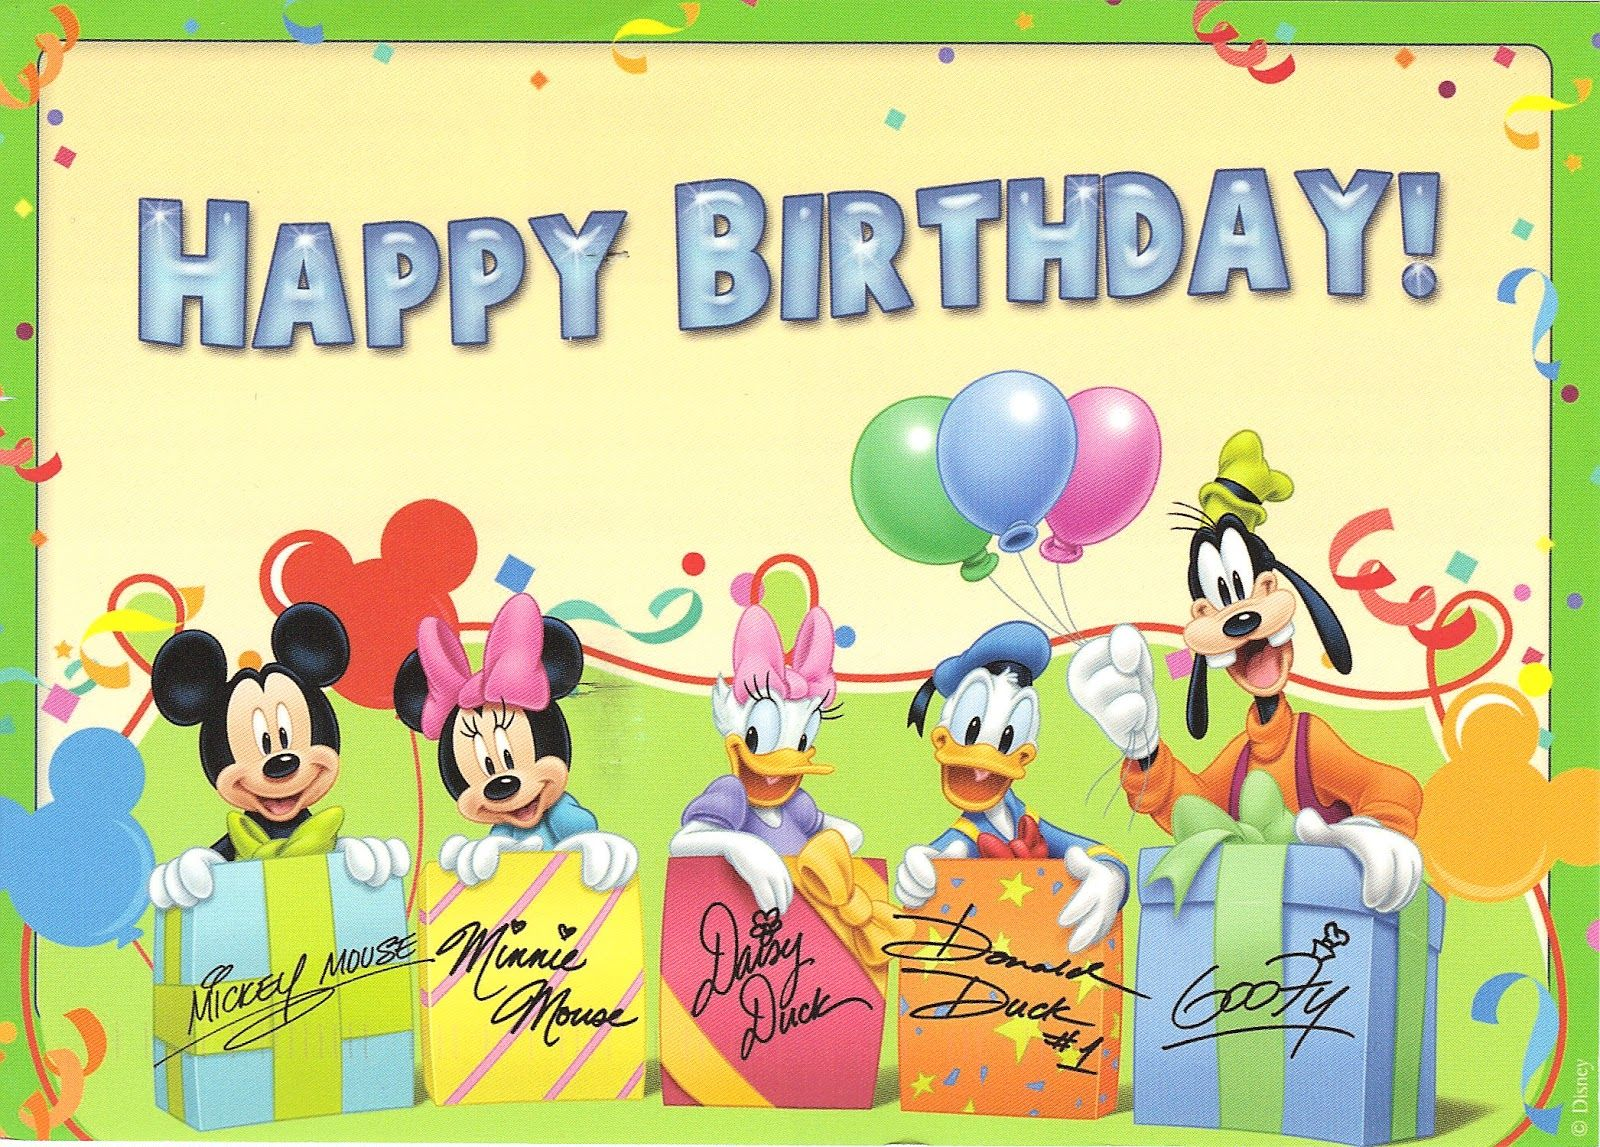 Disney birthday cards send birthday cards to little alabama disney birthday cards send birthday cards to little alabama hostage ethan to be kristyandbryce Choice Image